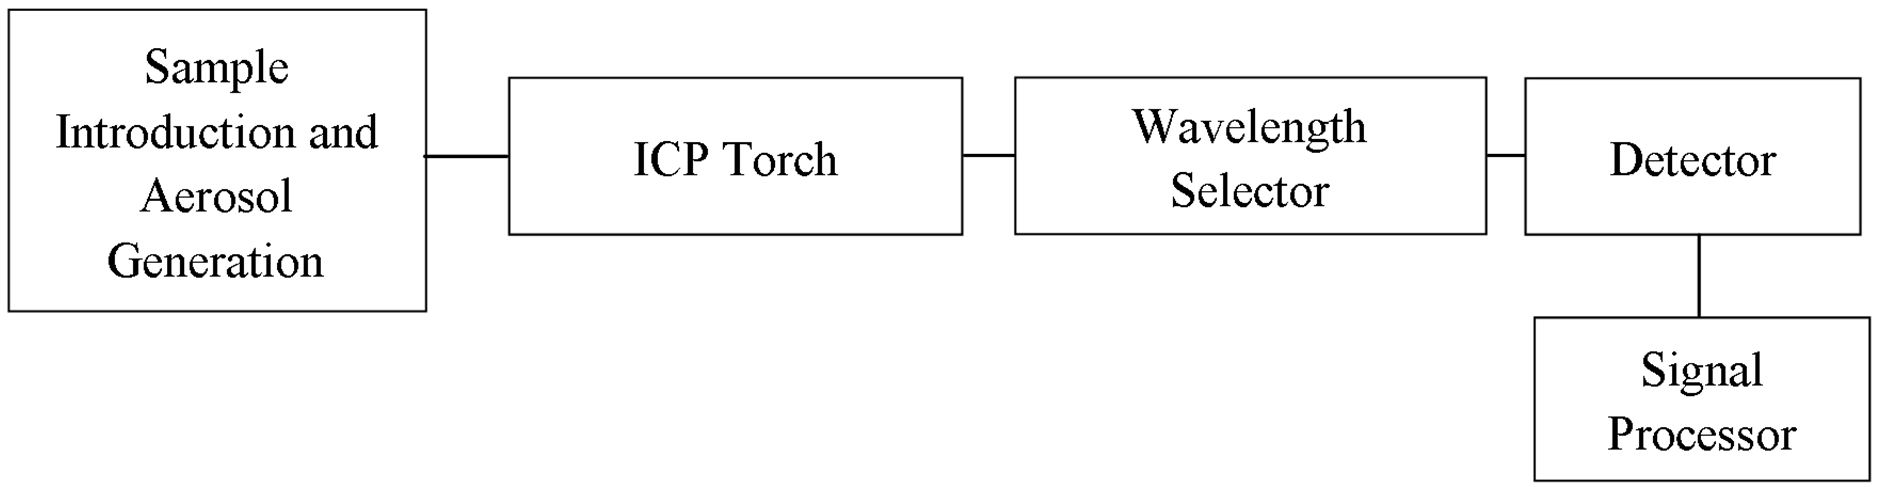 Determination Of Trace Metals In Waste Water And Their Removal Metal Detector Circuit Further Diagram Figure 2 Block